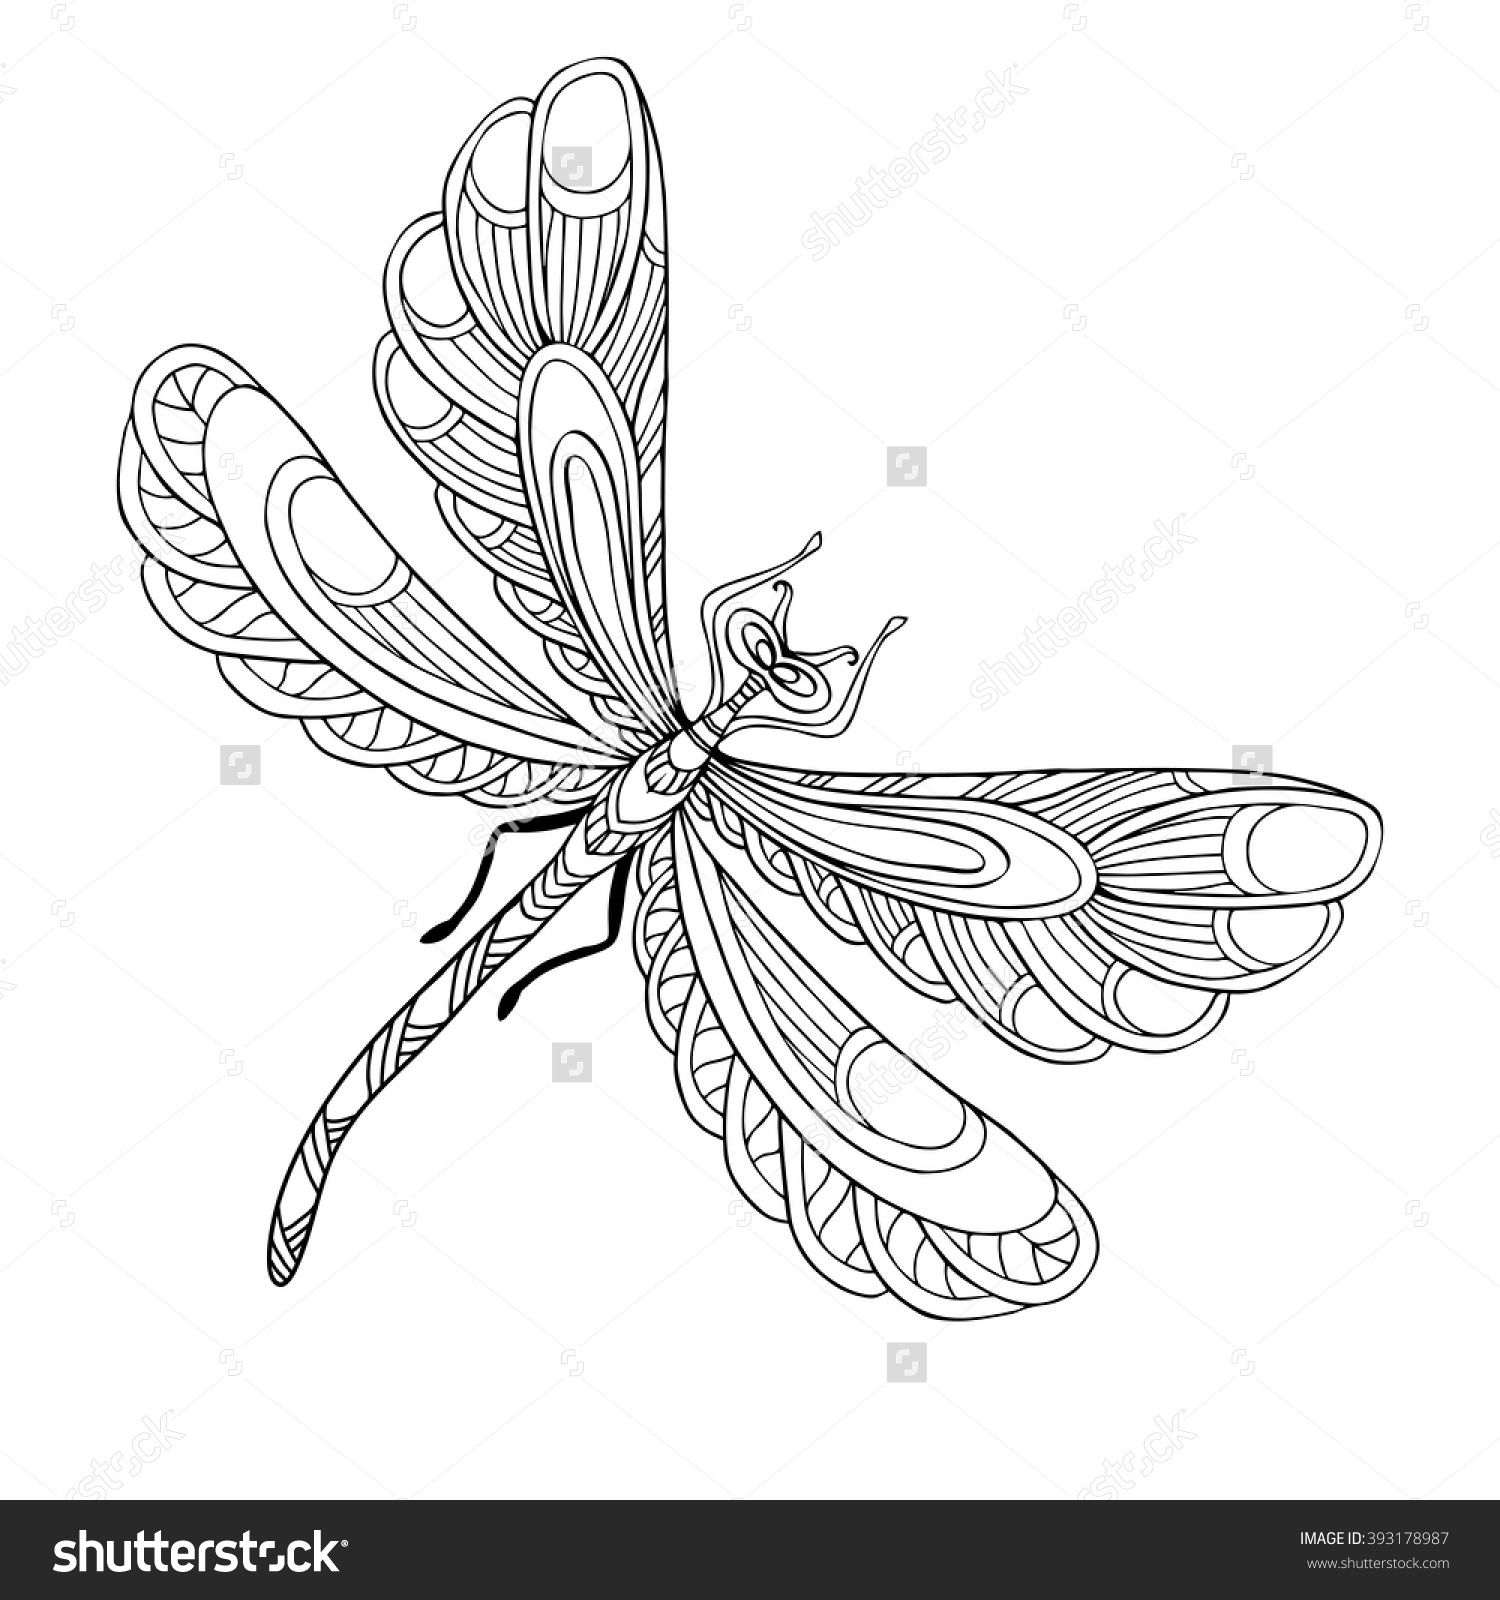 Adult dragonfly coloring pages coloring pages for Dragonfly coloring pages